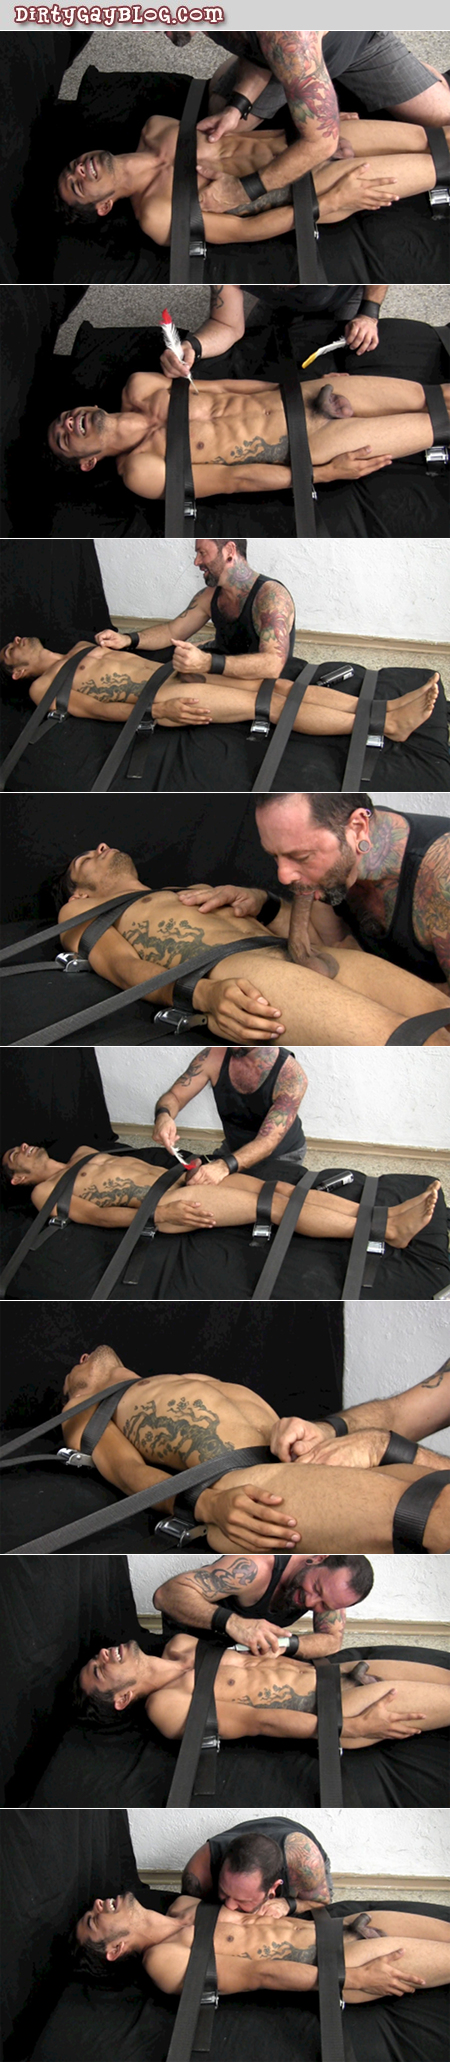 Tattooed straight twink is in gay bondage and tickled with a gay blowjob.